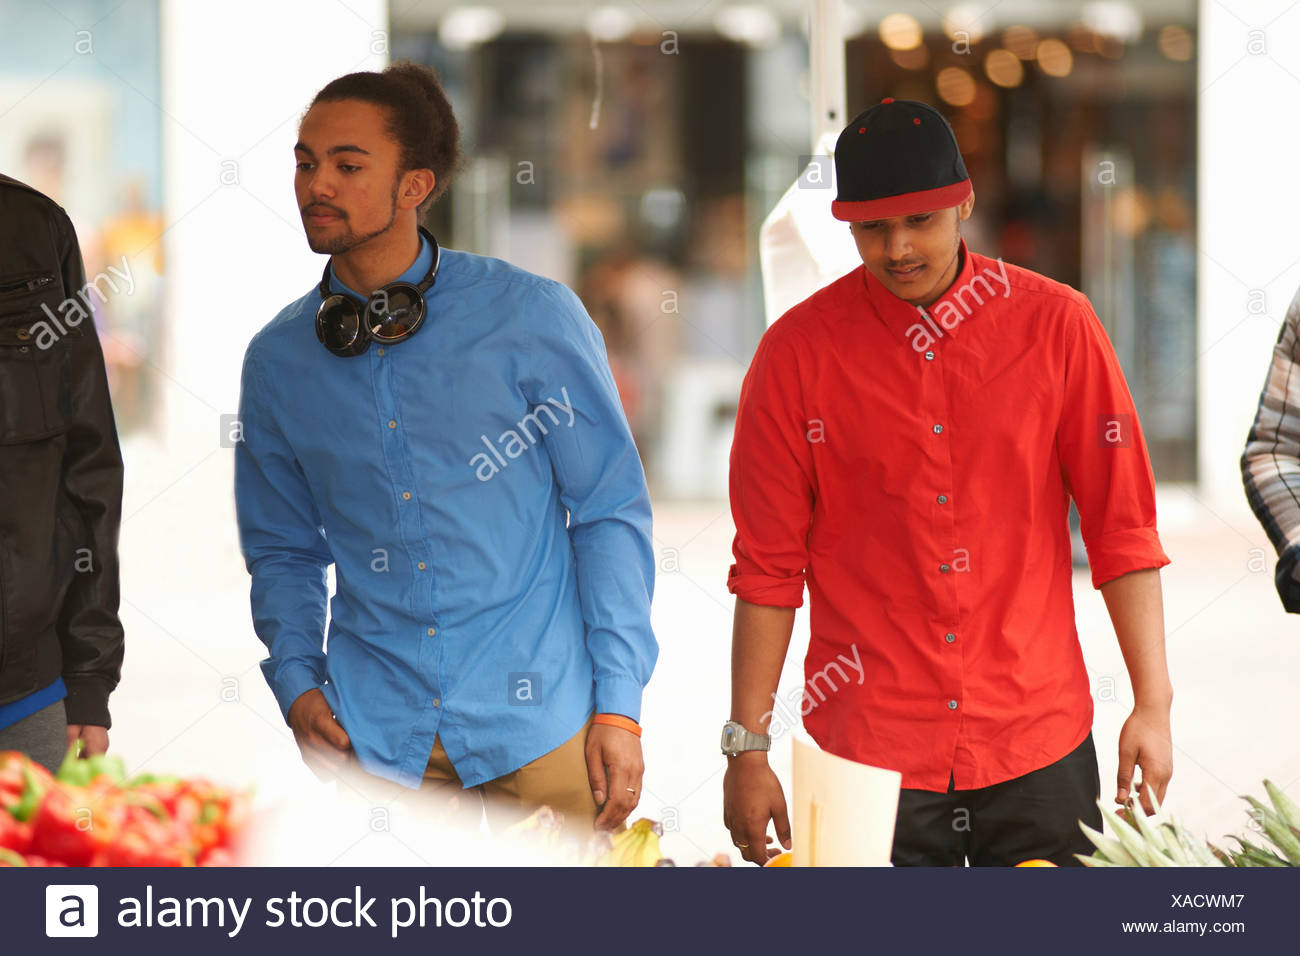 Two teenage boys at market - Stock Image